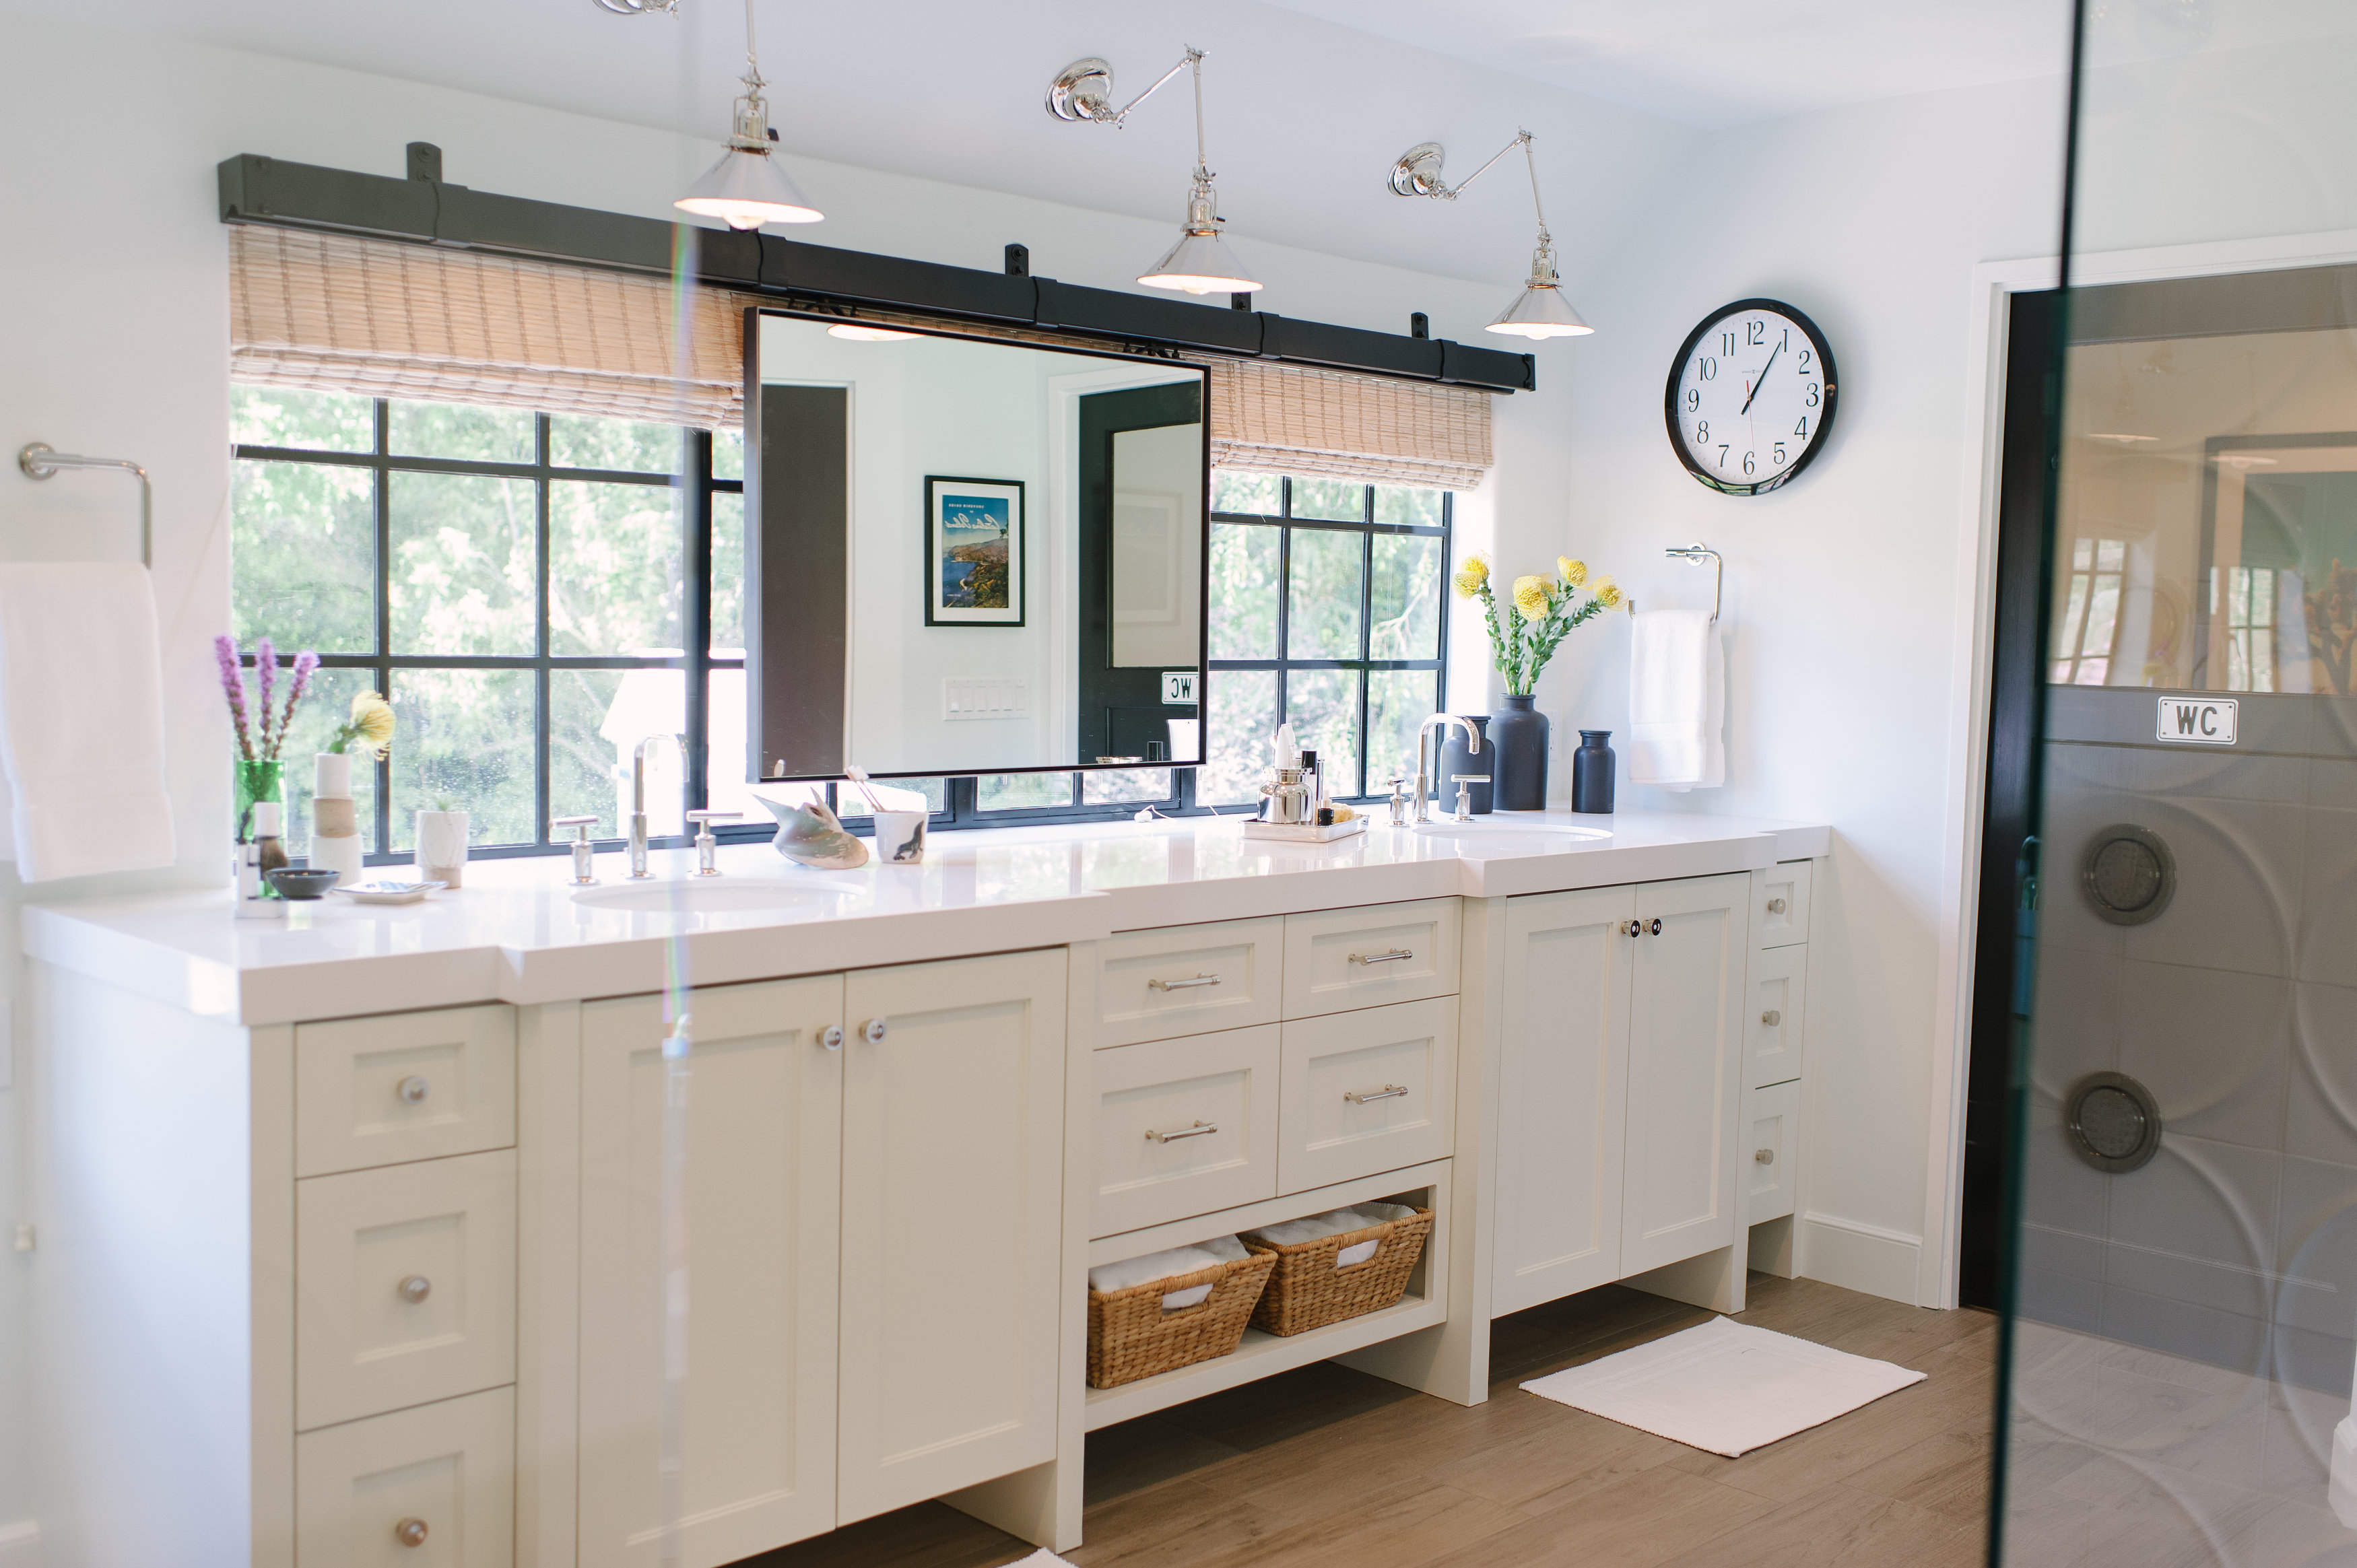 Purist faucets    To bring more light into the master bathroom, Lewis added a nine-foot window. The mirror slides back and forth on a barn-door track, so the couple can share it.